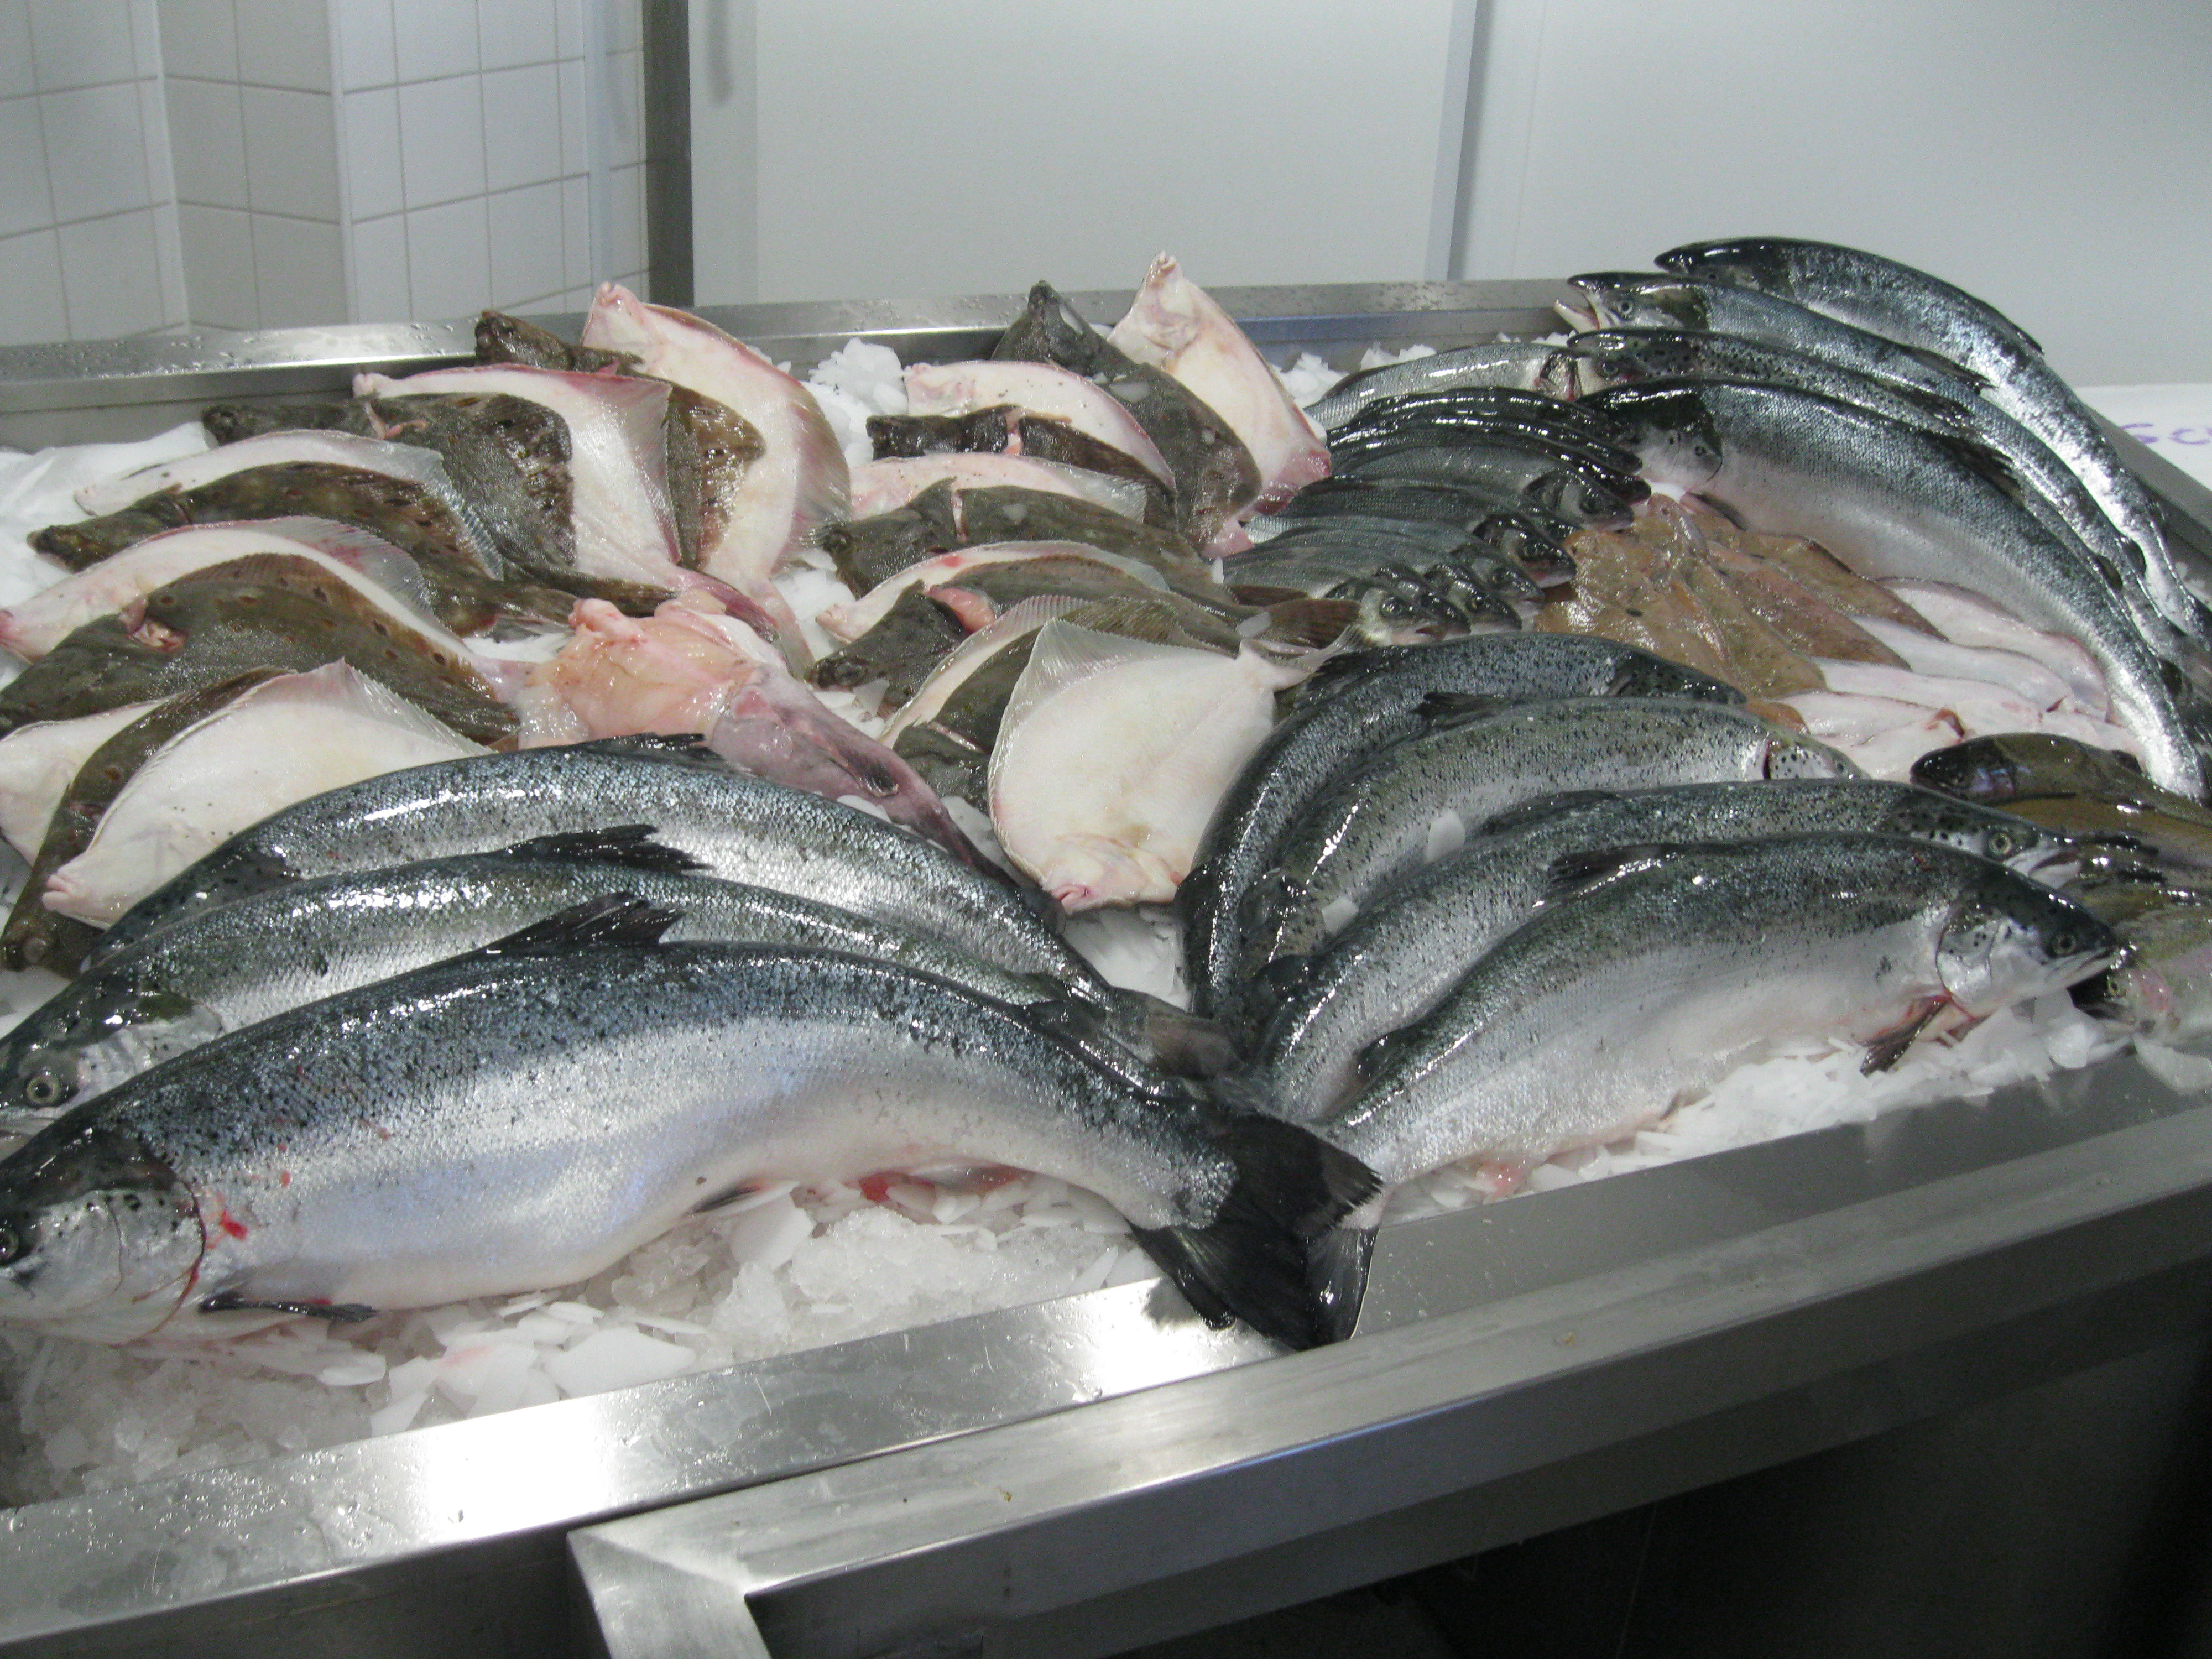 Billingsgate fish market and seafood school london for Places to buy fish near me